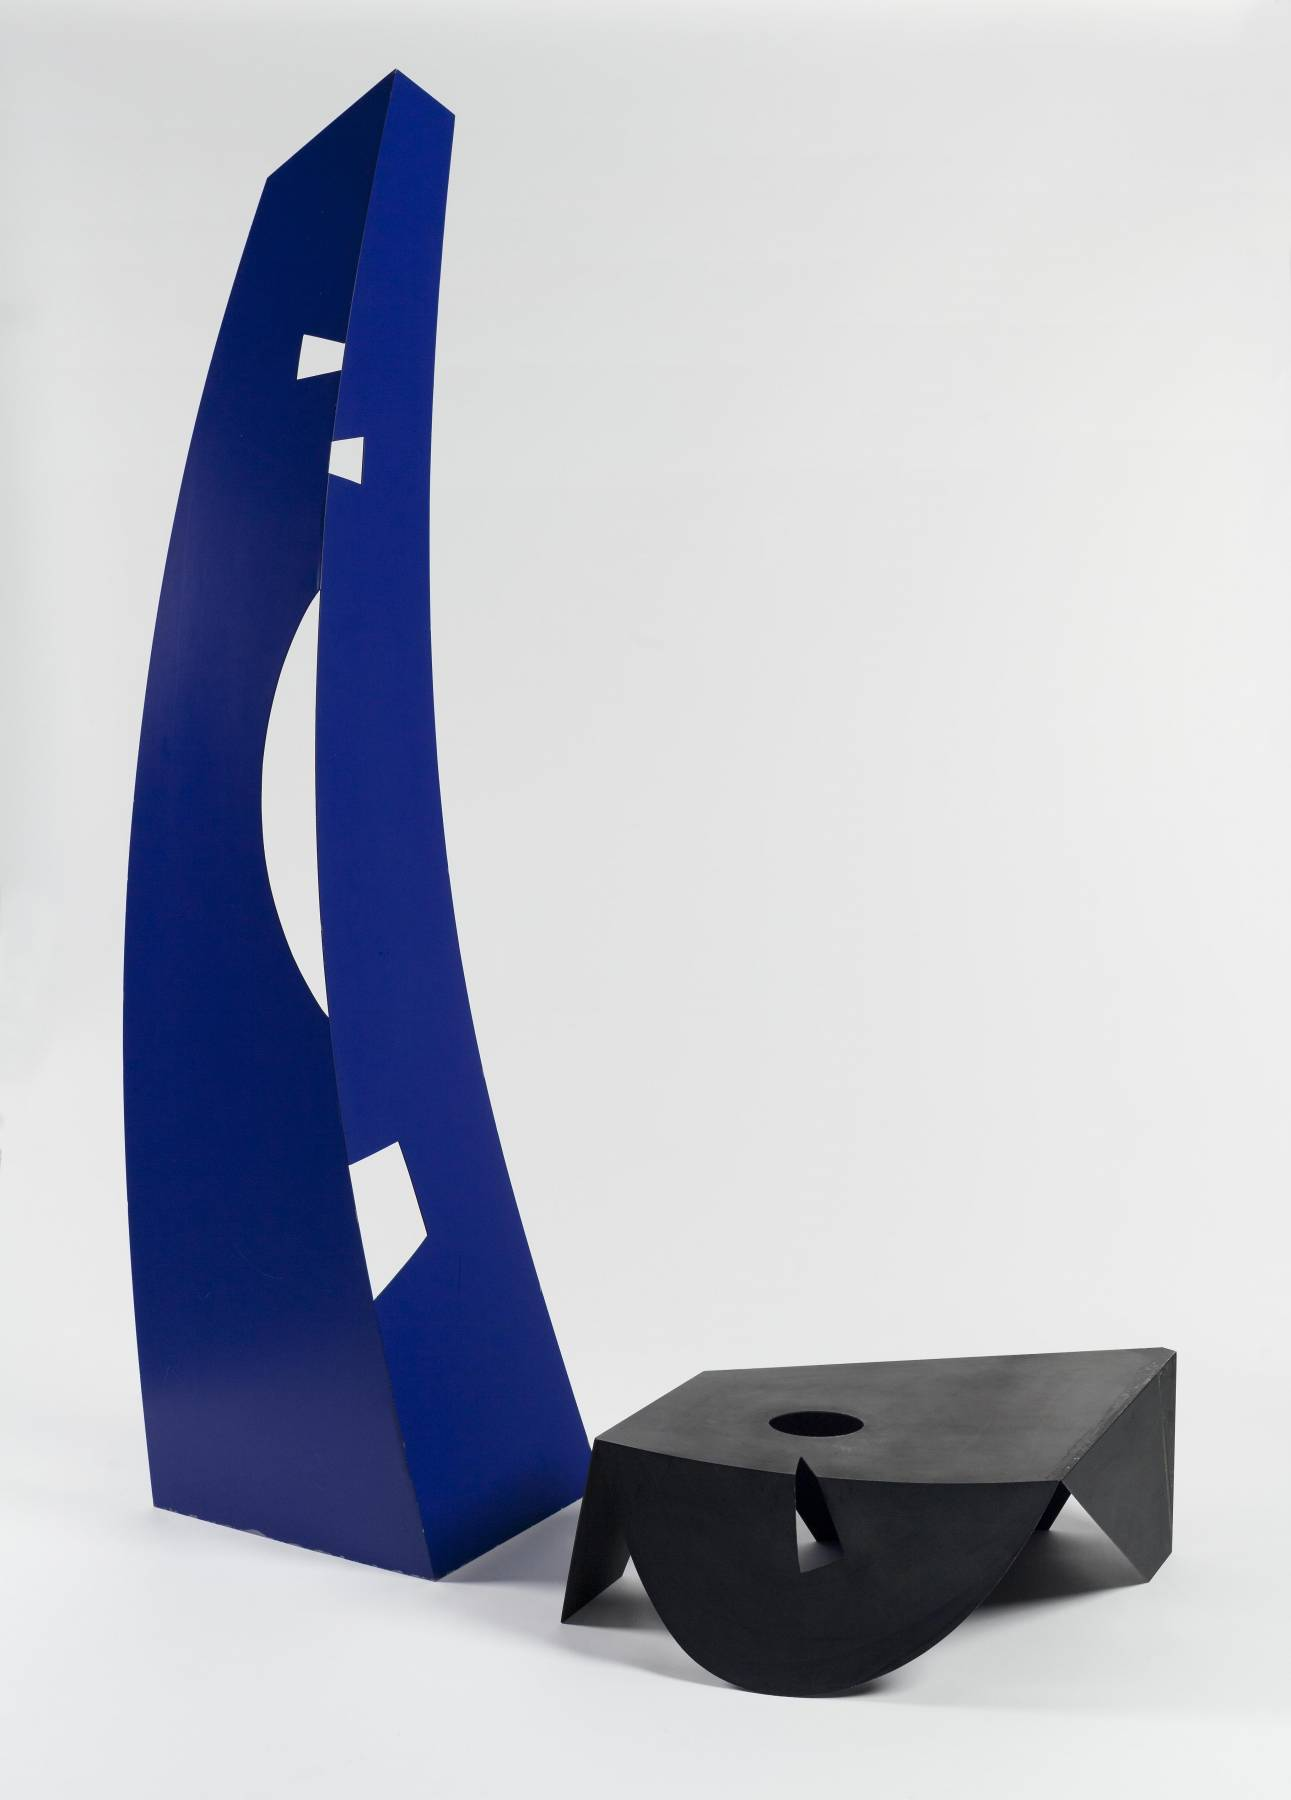 """""""Black and Blue, '' by isamu Noguchi, in the show  """" Isamu Noguchi and the Borders of Sculpture,'' at the Portland Museum of Art, Oct. 5-Jan. 6.    The museum says the show:    """"{I}nvestigates Noguchi's expansive artistic practice by exploring his efforts to enlarge and challenge conventional notions of sculptural boundaries. Born in 1904, the Japanese-American modernist experimented endlessly with the intersection of objects, people, and space over the course of his 60-year career. Melding ideas and approaches to art from across the globe, Noguchi created traditional sculpture, landscape architecture, play structures, monuments, stage sets, interior designs, furniture, and more. This exhibition brings aspects of his varied production together, complicating notions of form and function and using the juxtaposition of materials, shapes, and techniques to encourage audiences to reimagine their sense of what sculpture can be.''"""